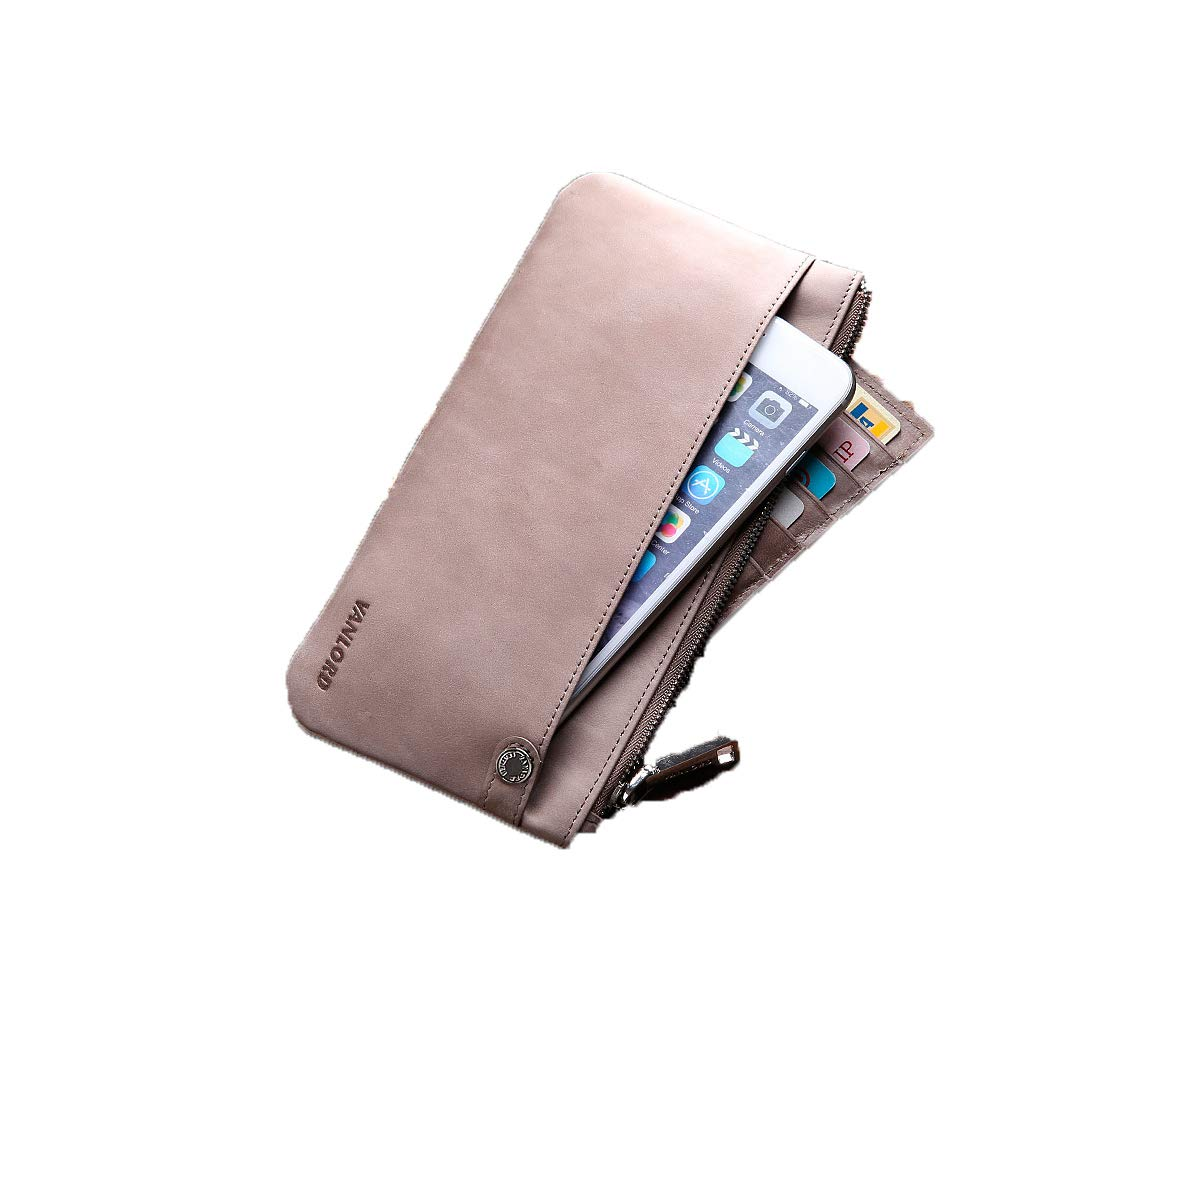 Color : Pink Extra Capacity Travel Wallet Bifold Side Flip Love Gift Extra Capacity Travel Wallet Kalmar RFID Travel Wallet 2 ID Window RFID Wallet for Men